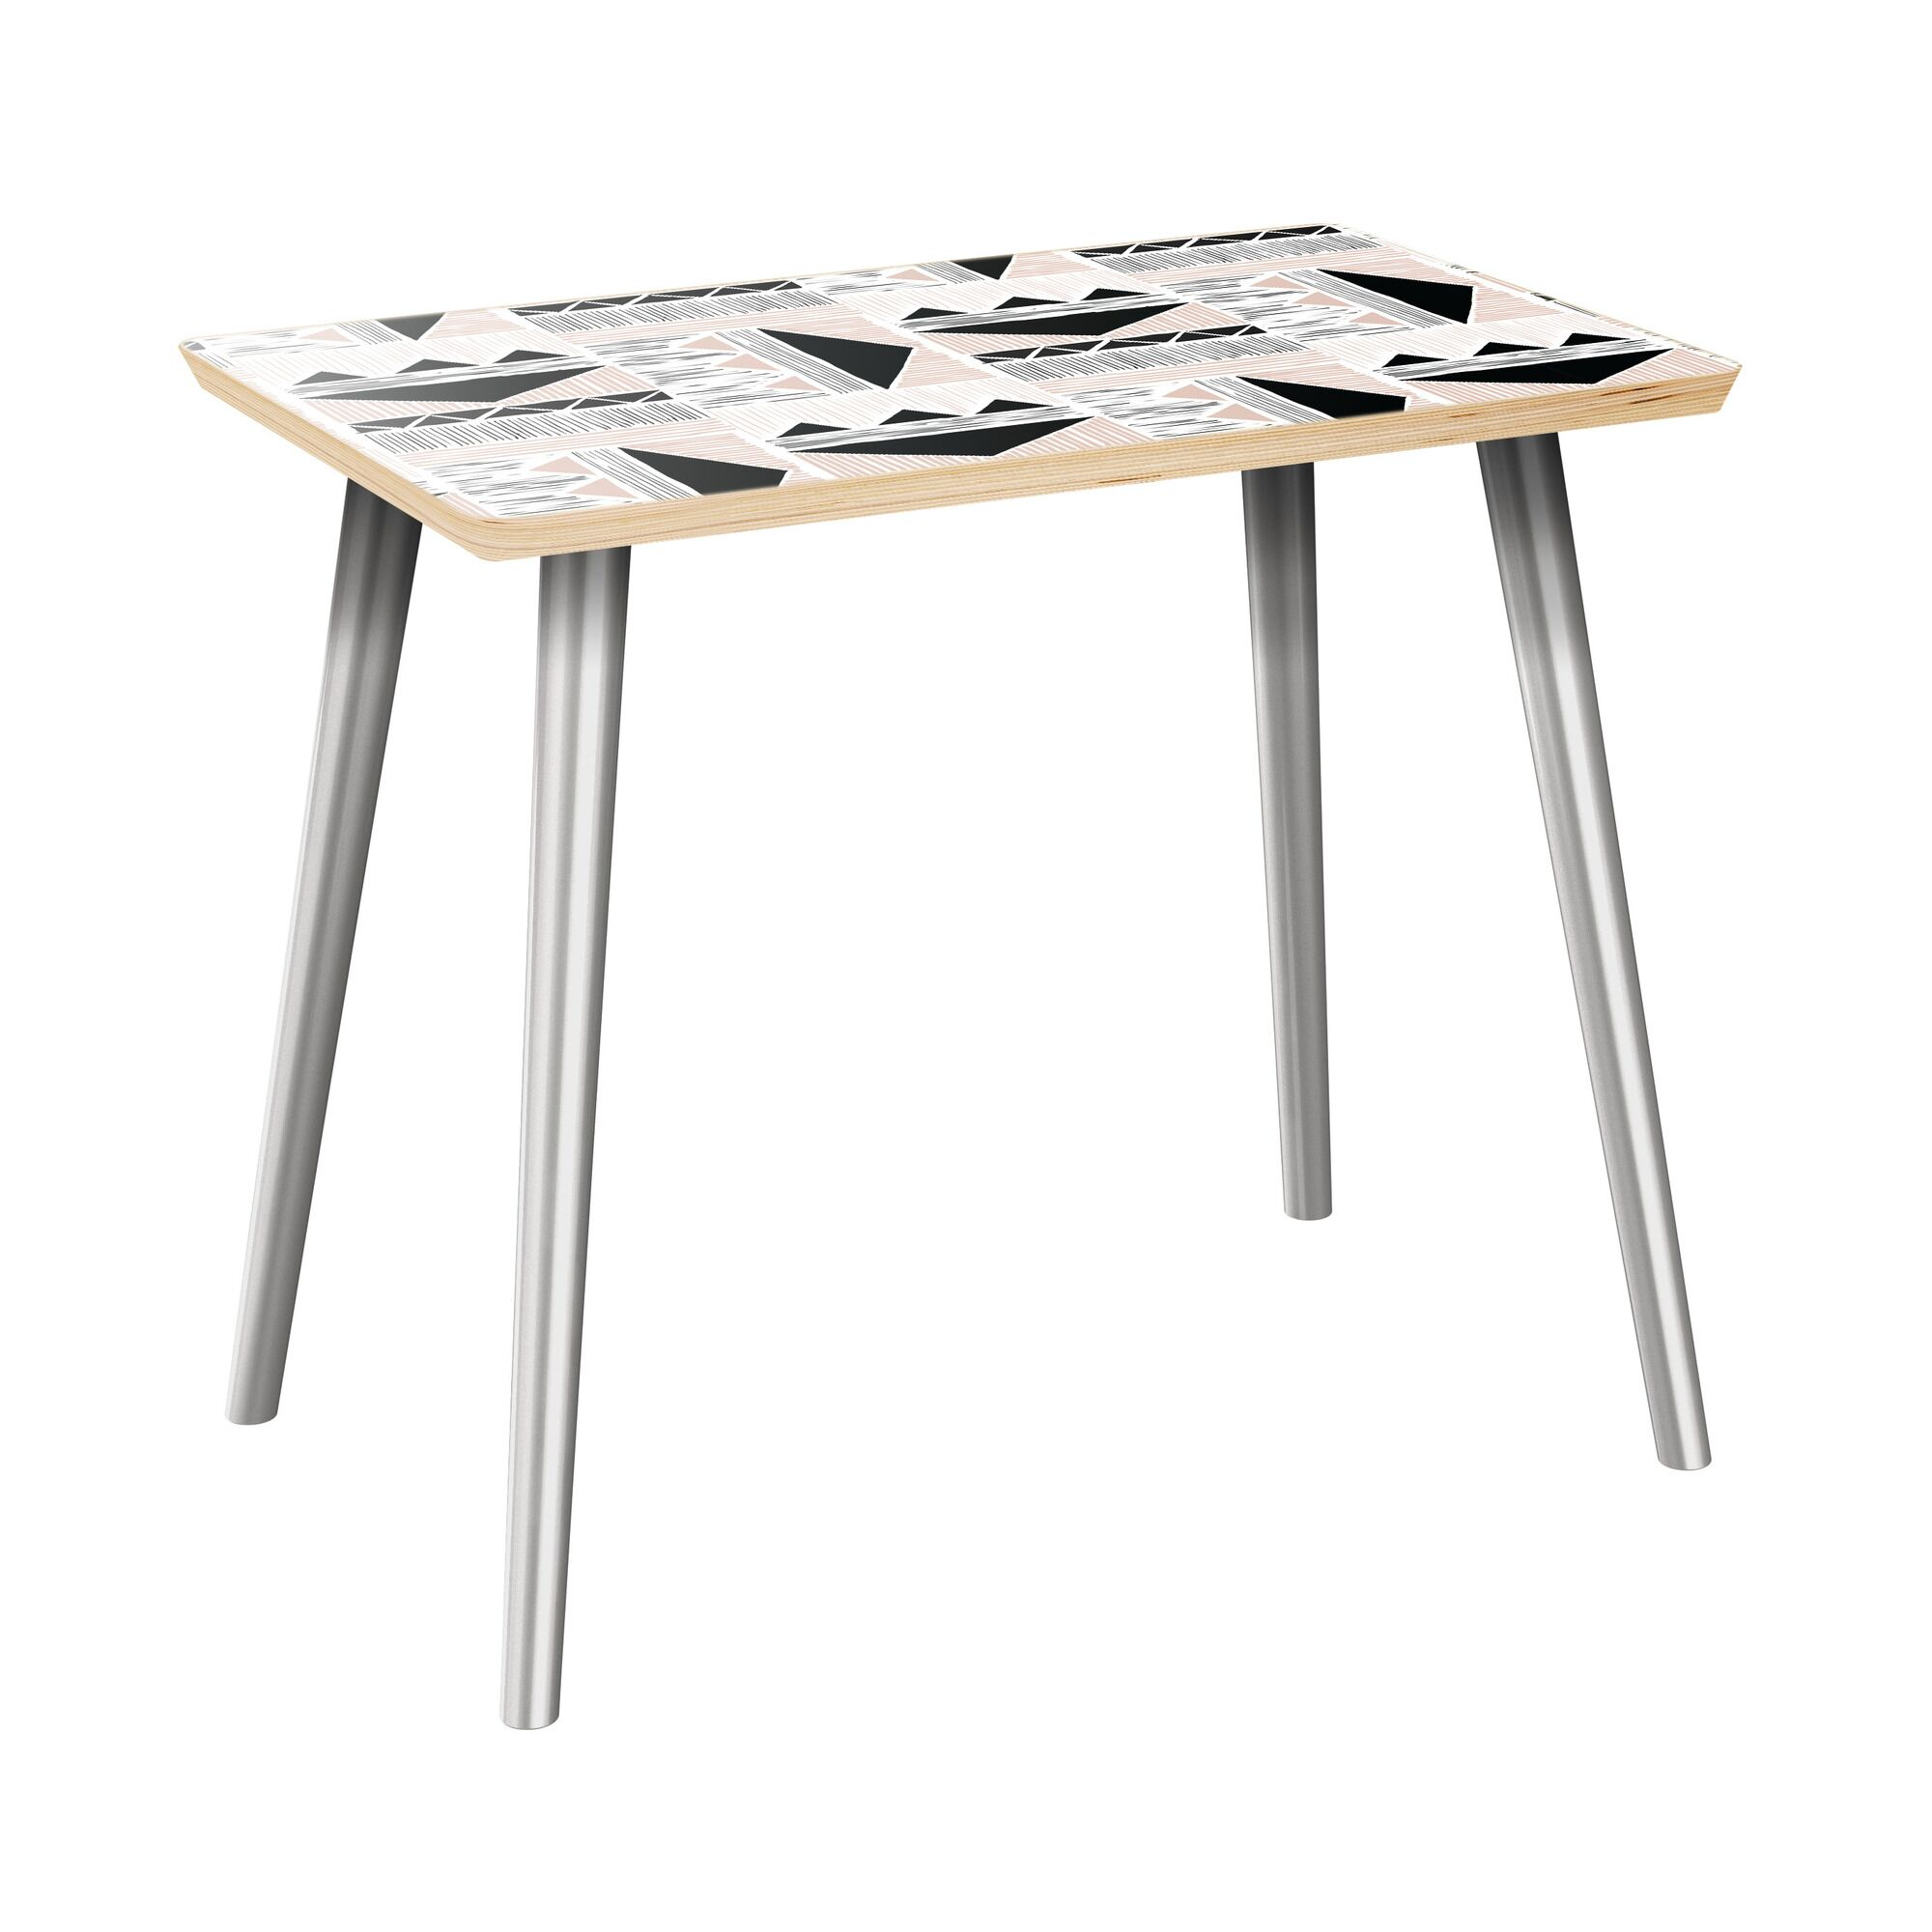 Hornick End Table Table Top Color: Natural, Table Base Color: Chrome